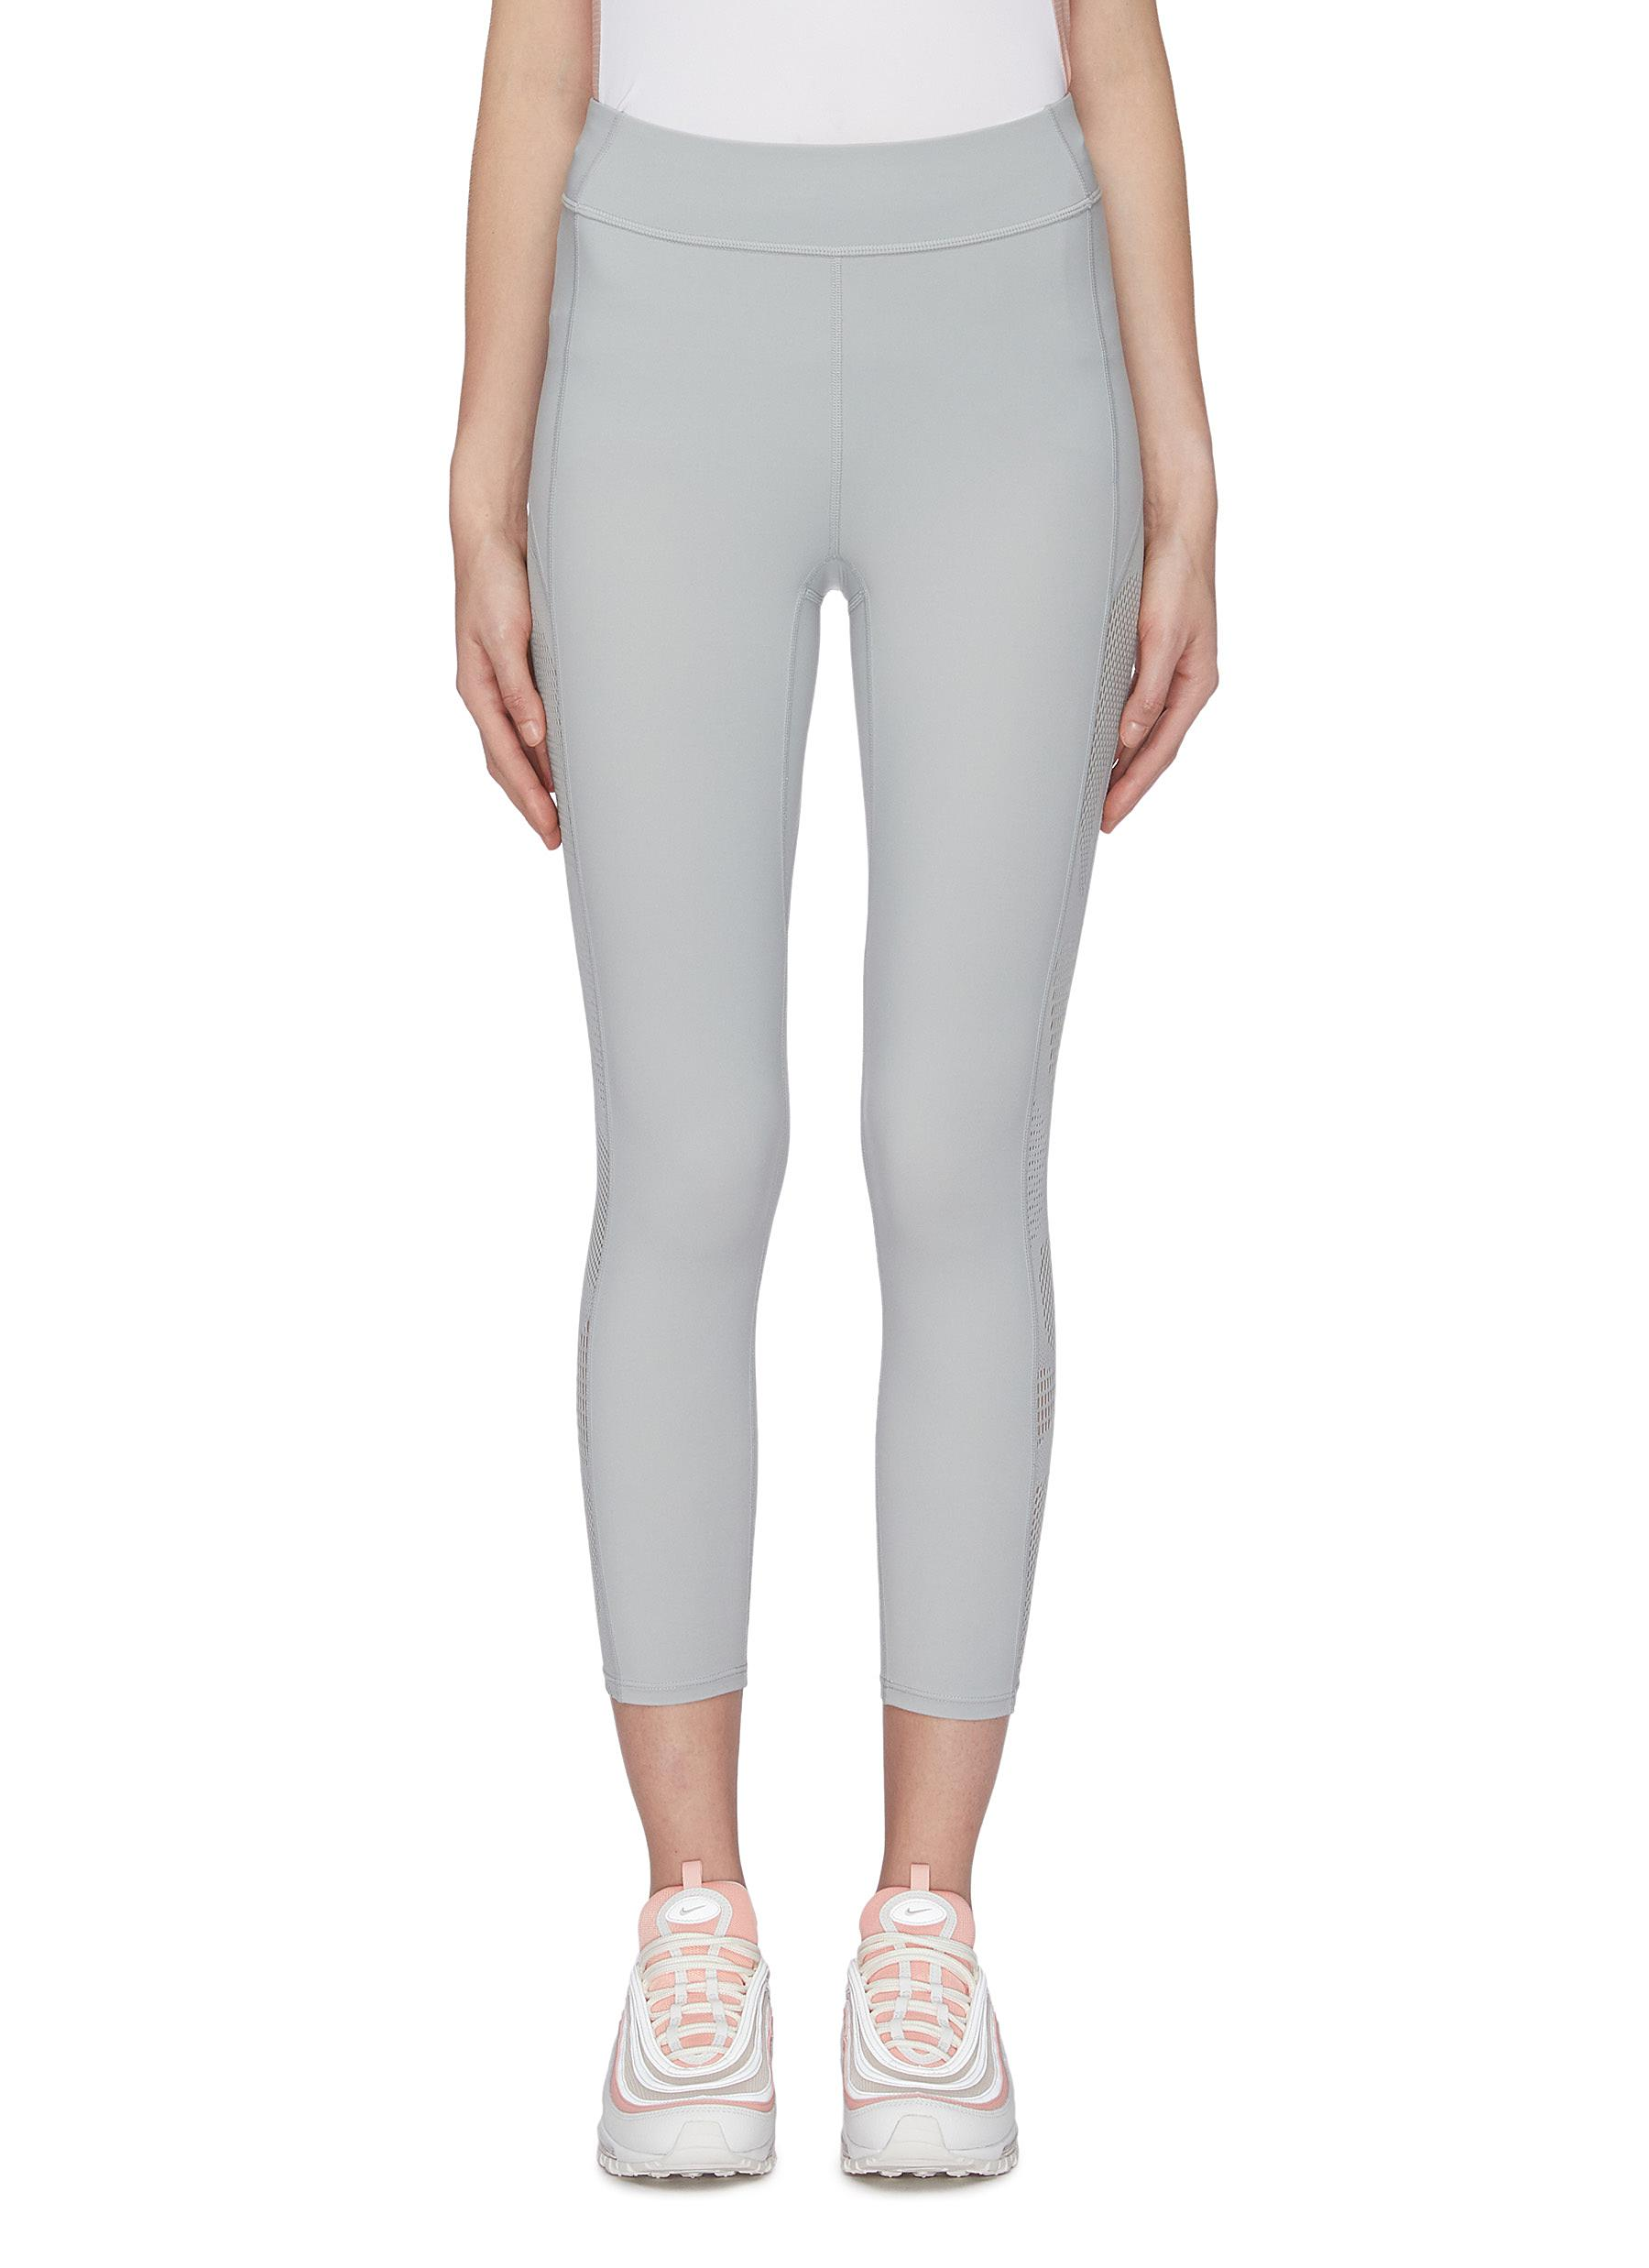 Performance leggings by Particle Fever